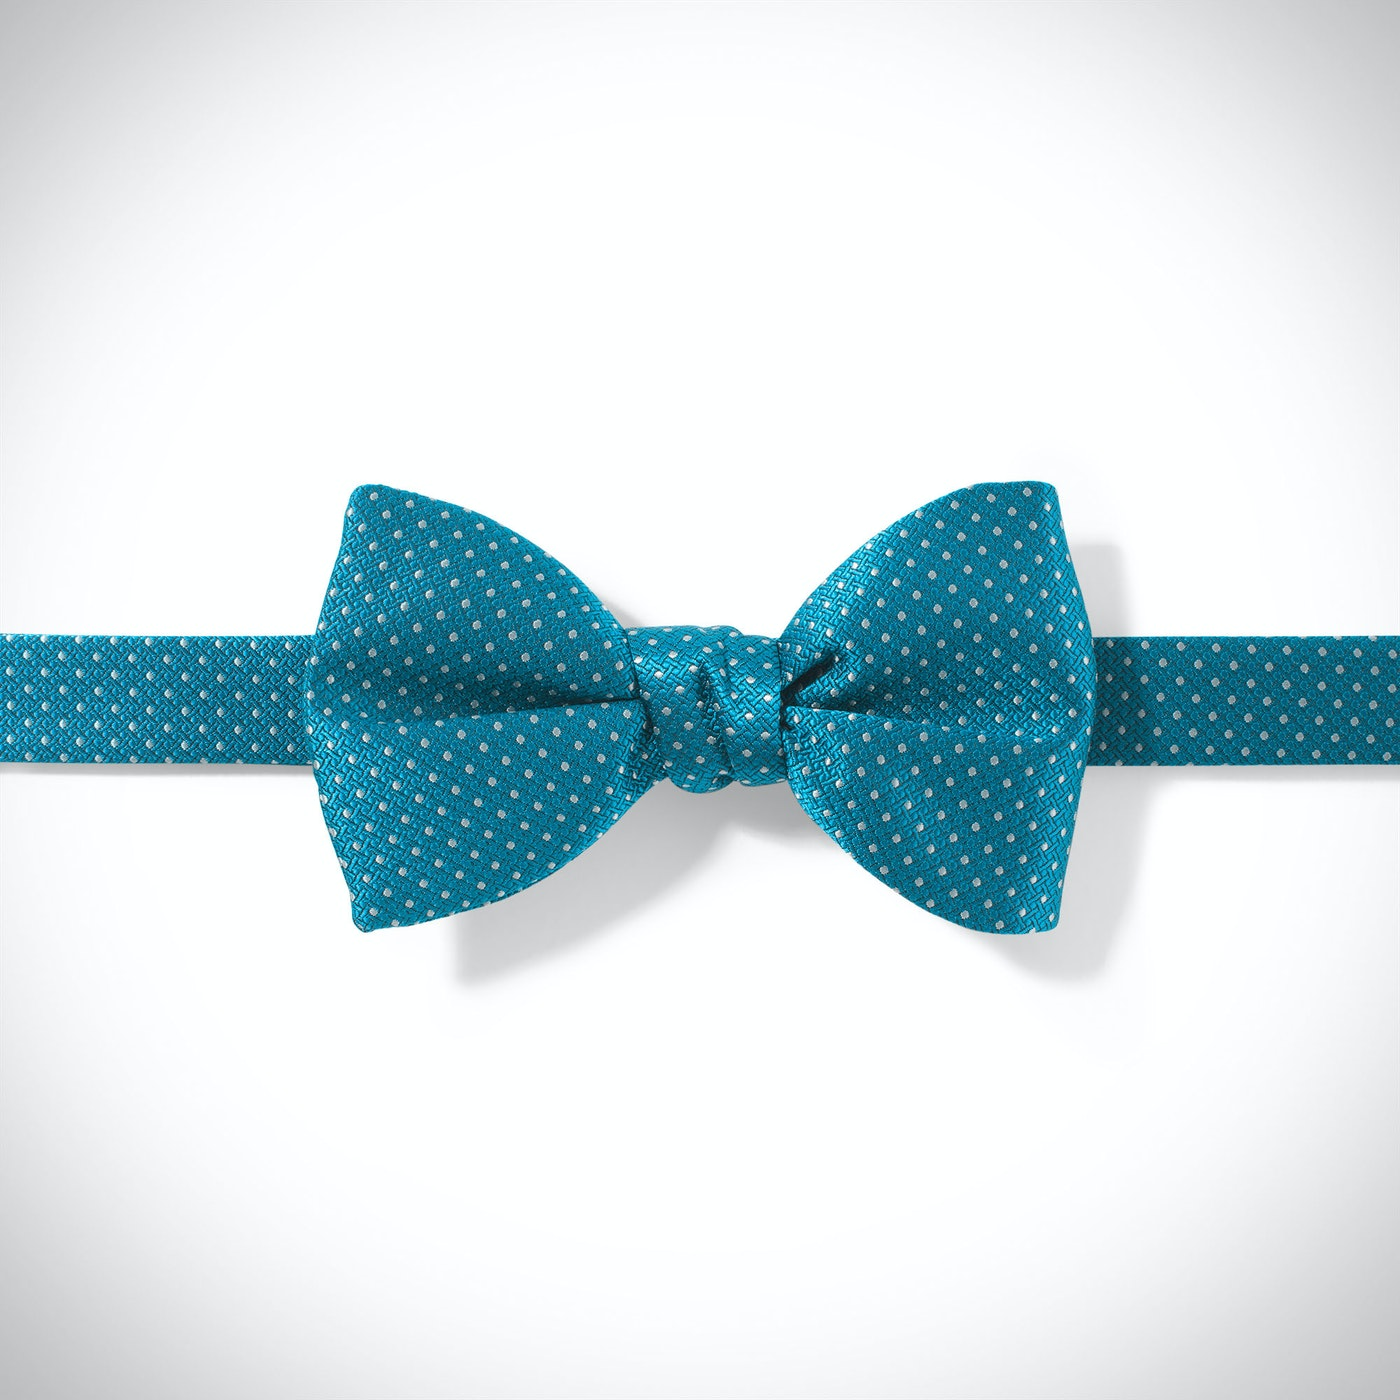 Pacific and White Pin Dot Pre-Tied Bow Tie